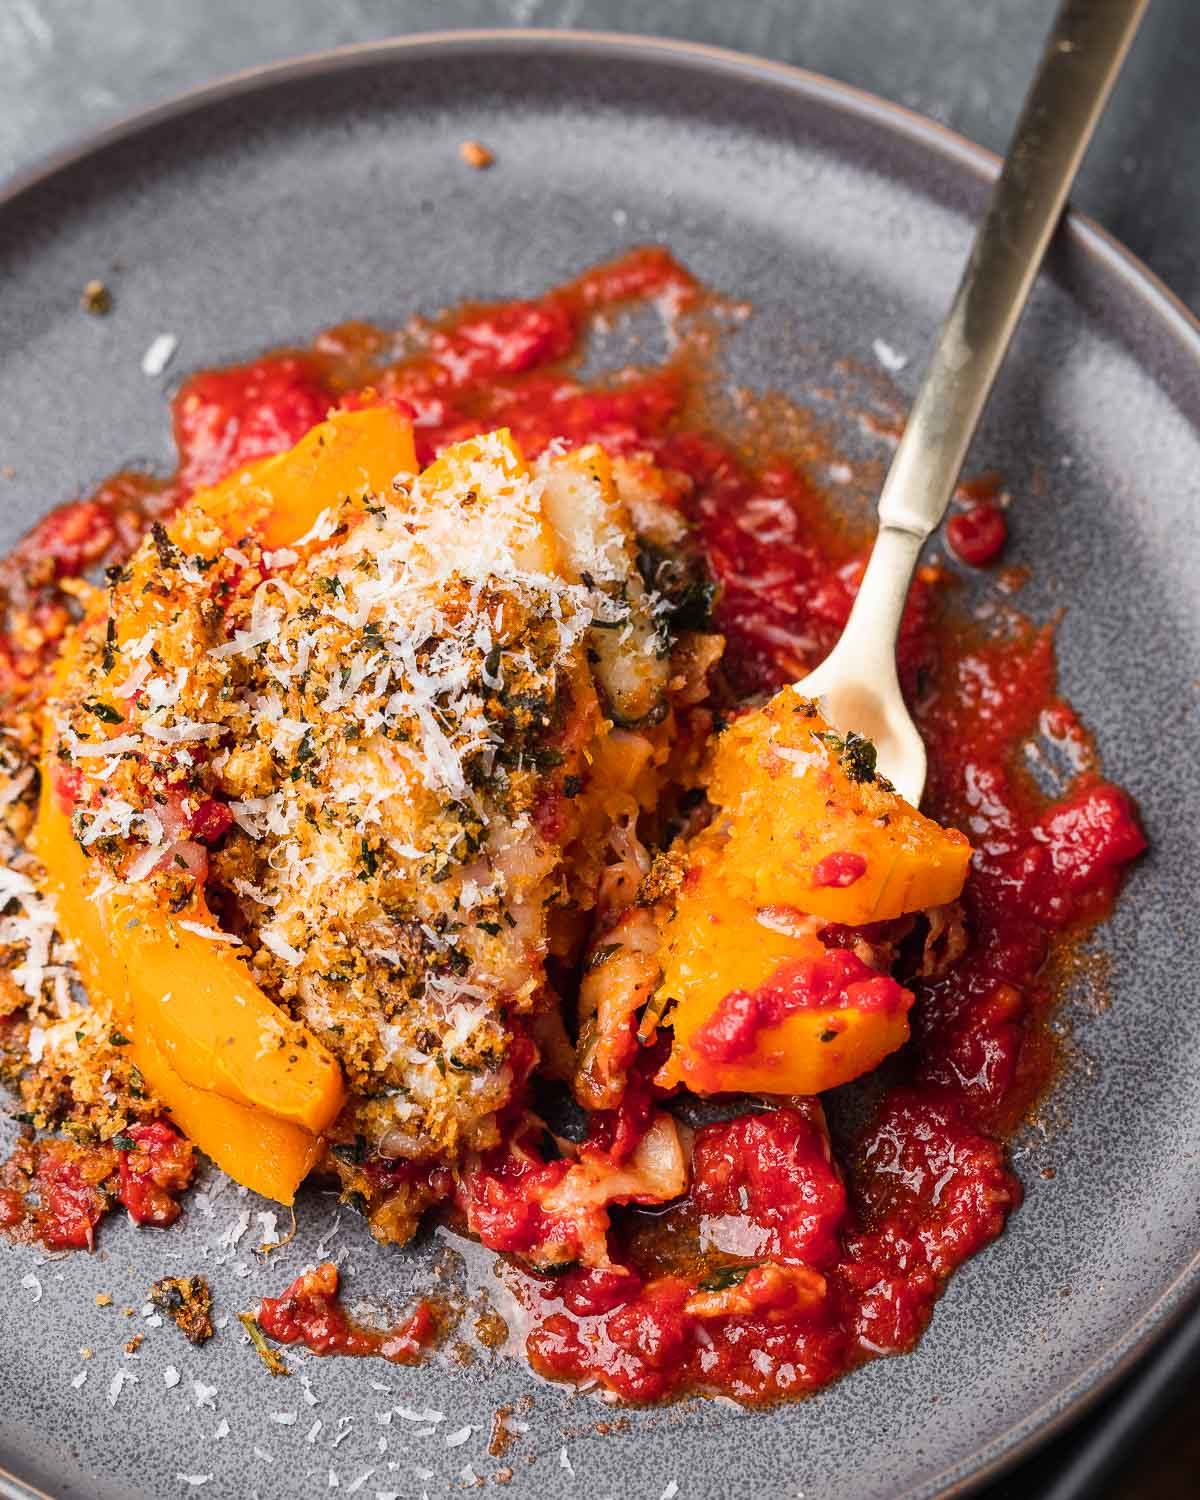 Butternut squash parmigiana in grey plate with fork holding piece.